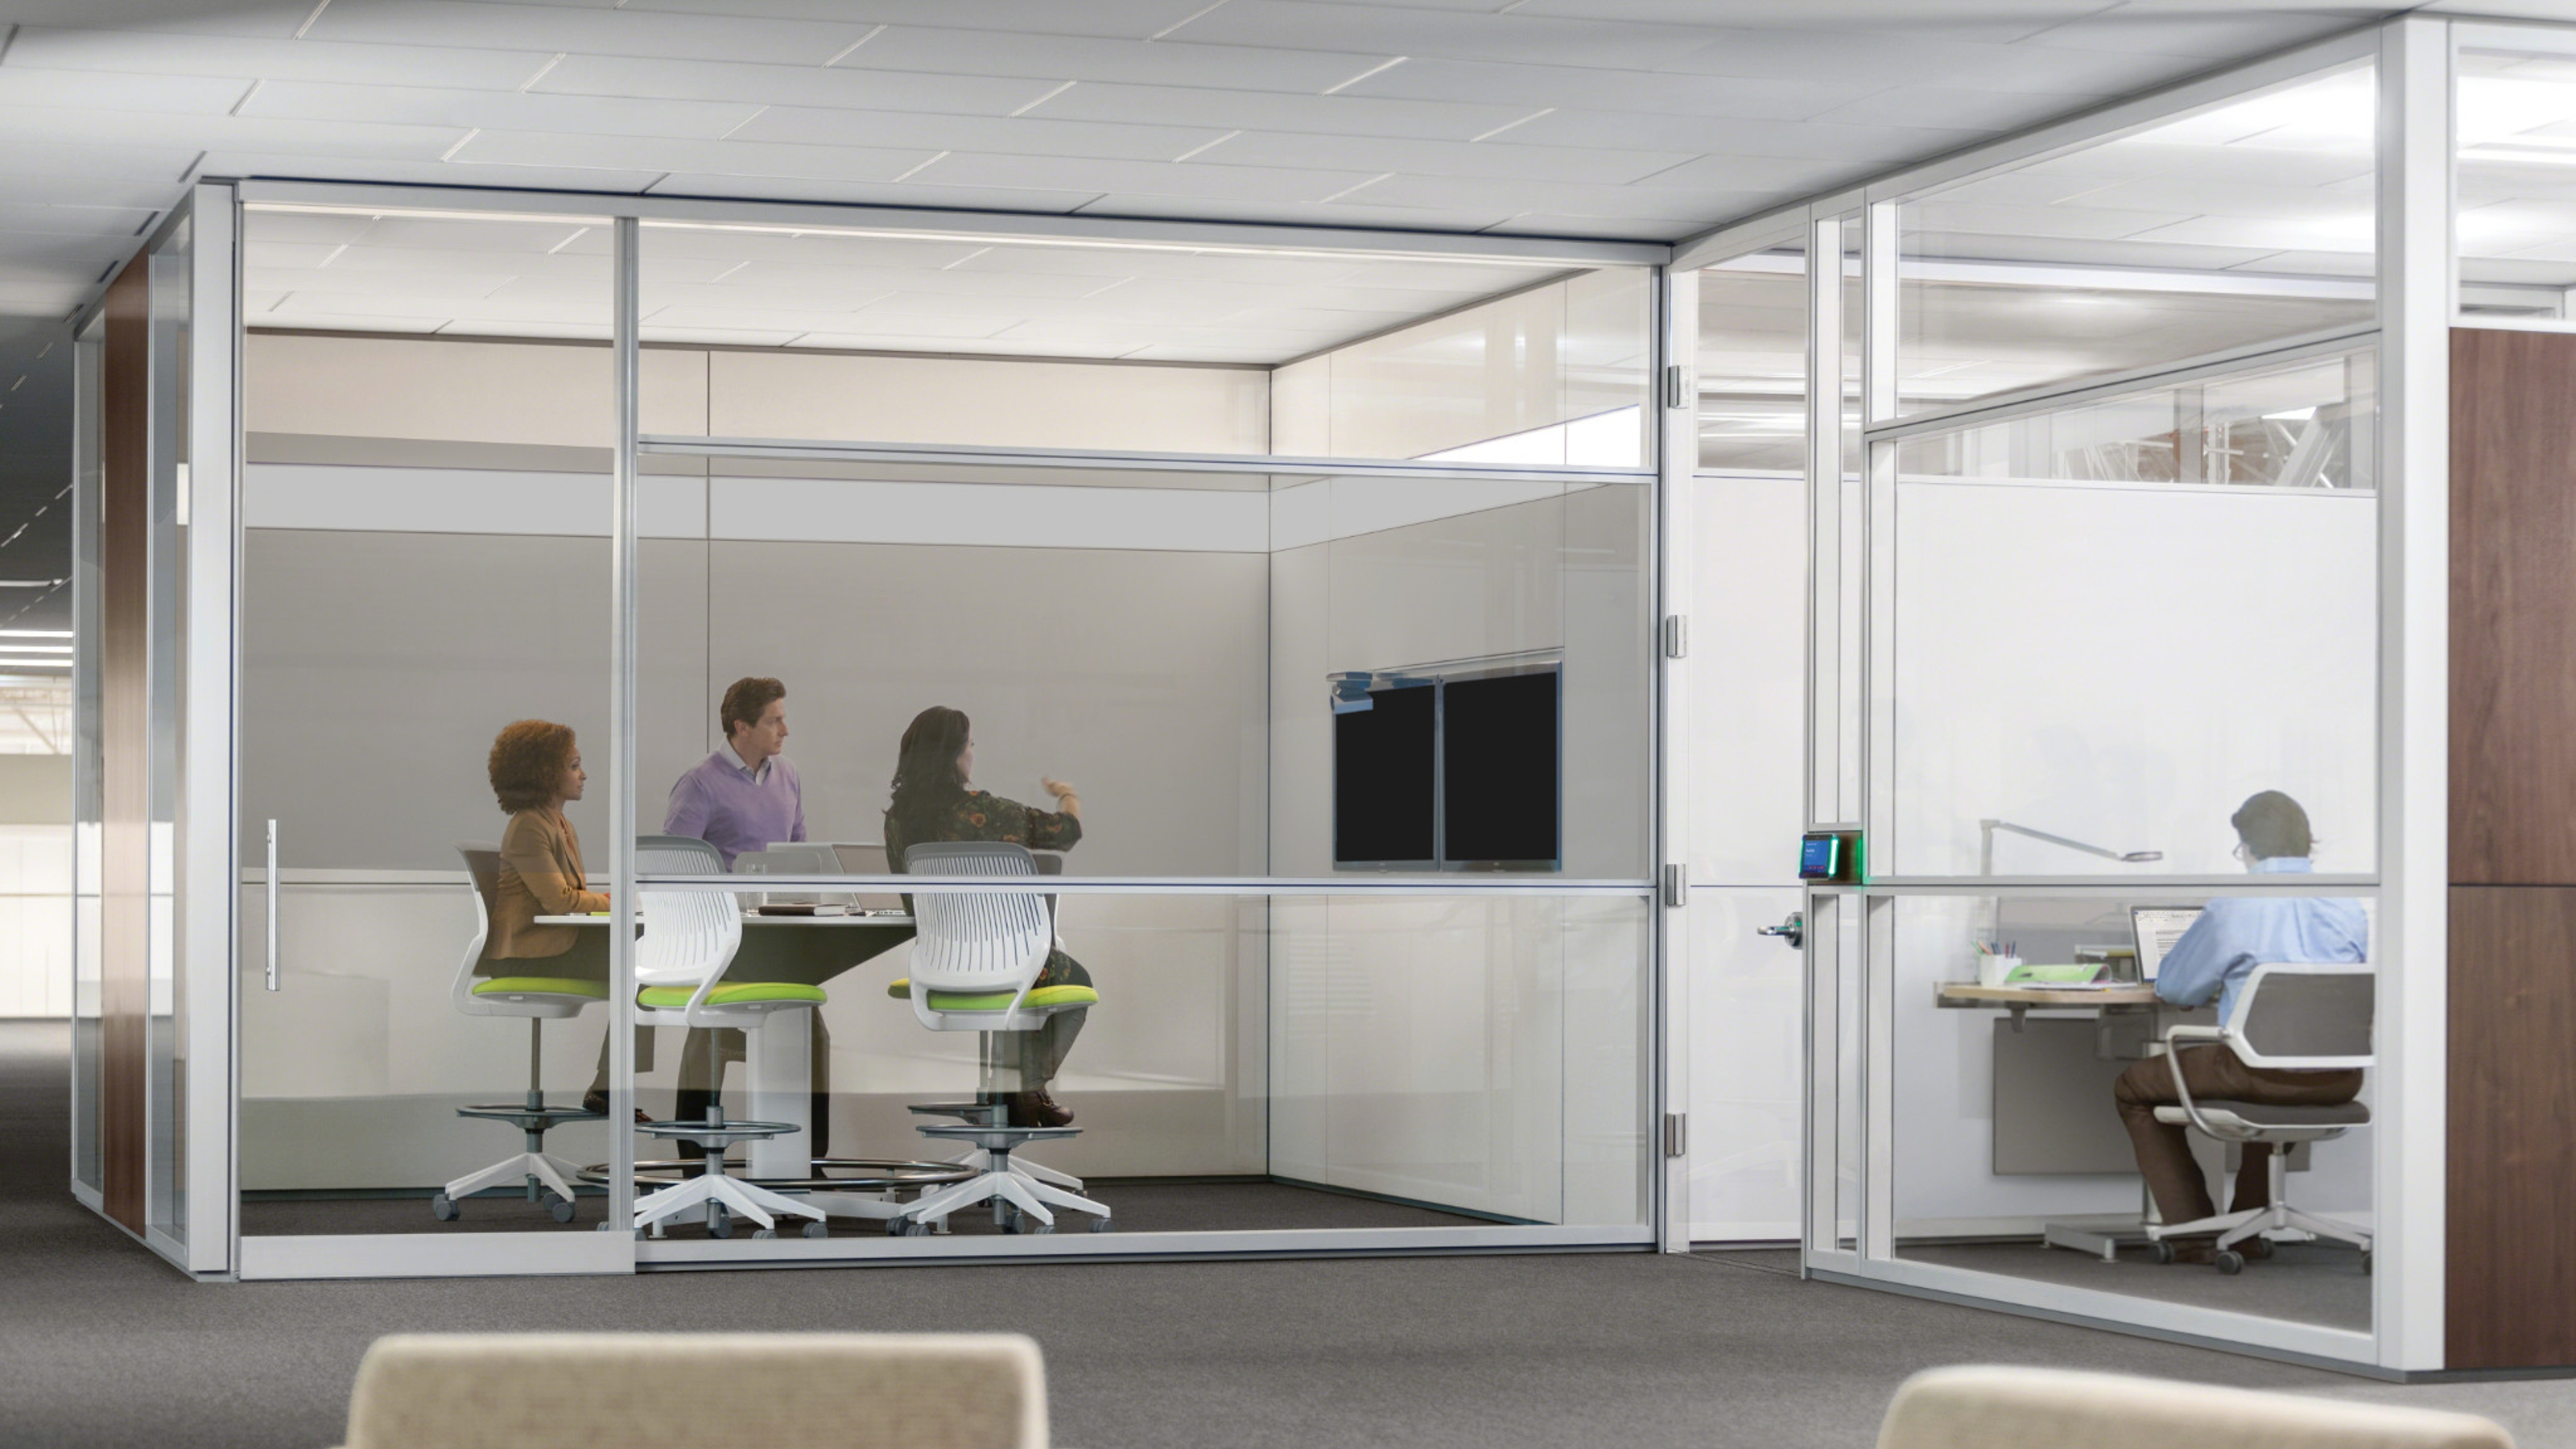 Casper Cloaking Technology Privacy Transparency in the Workplace